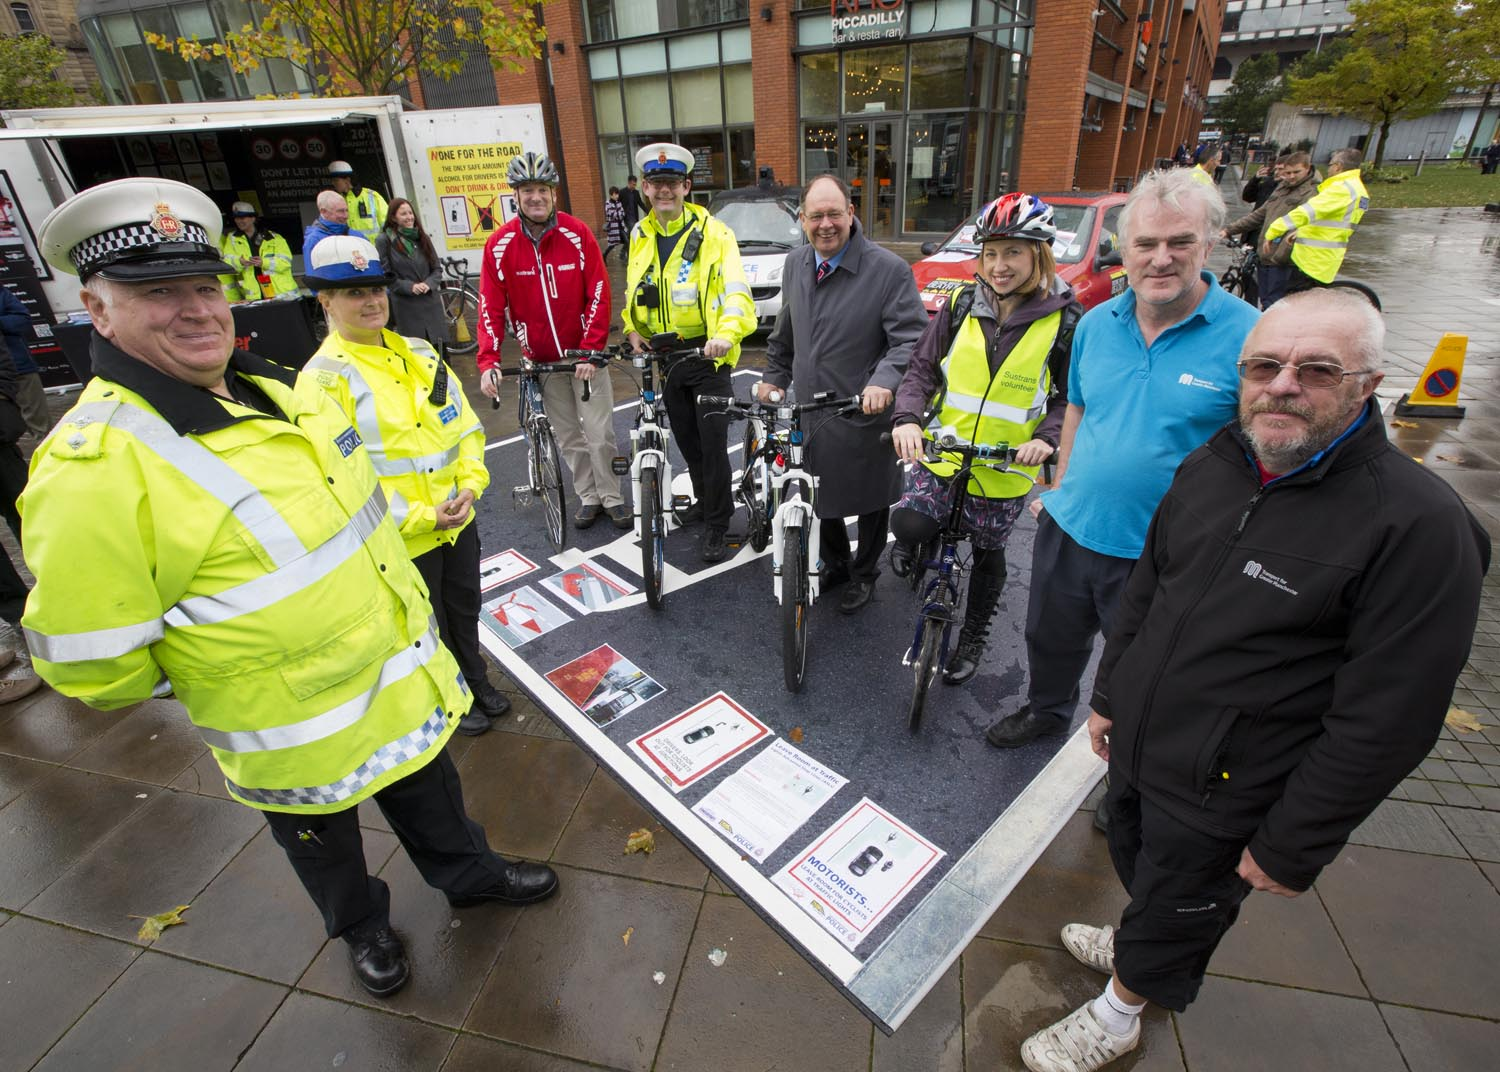 Road safety event by GMP at Piccadilly. Linked to Oldham's Winter Road Ready event on 01/11/14